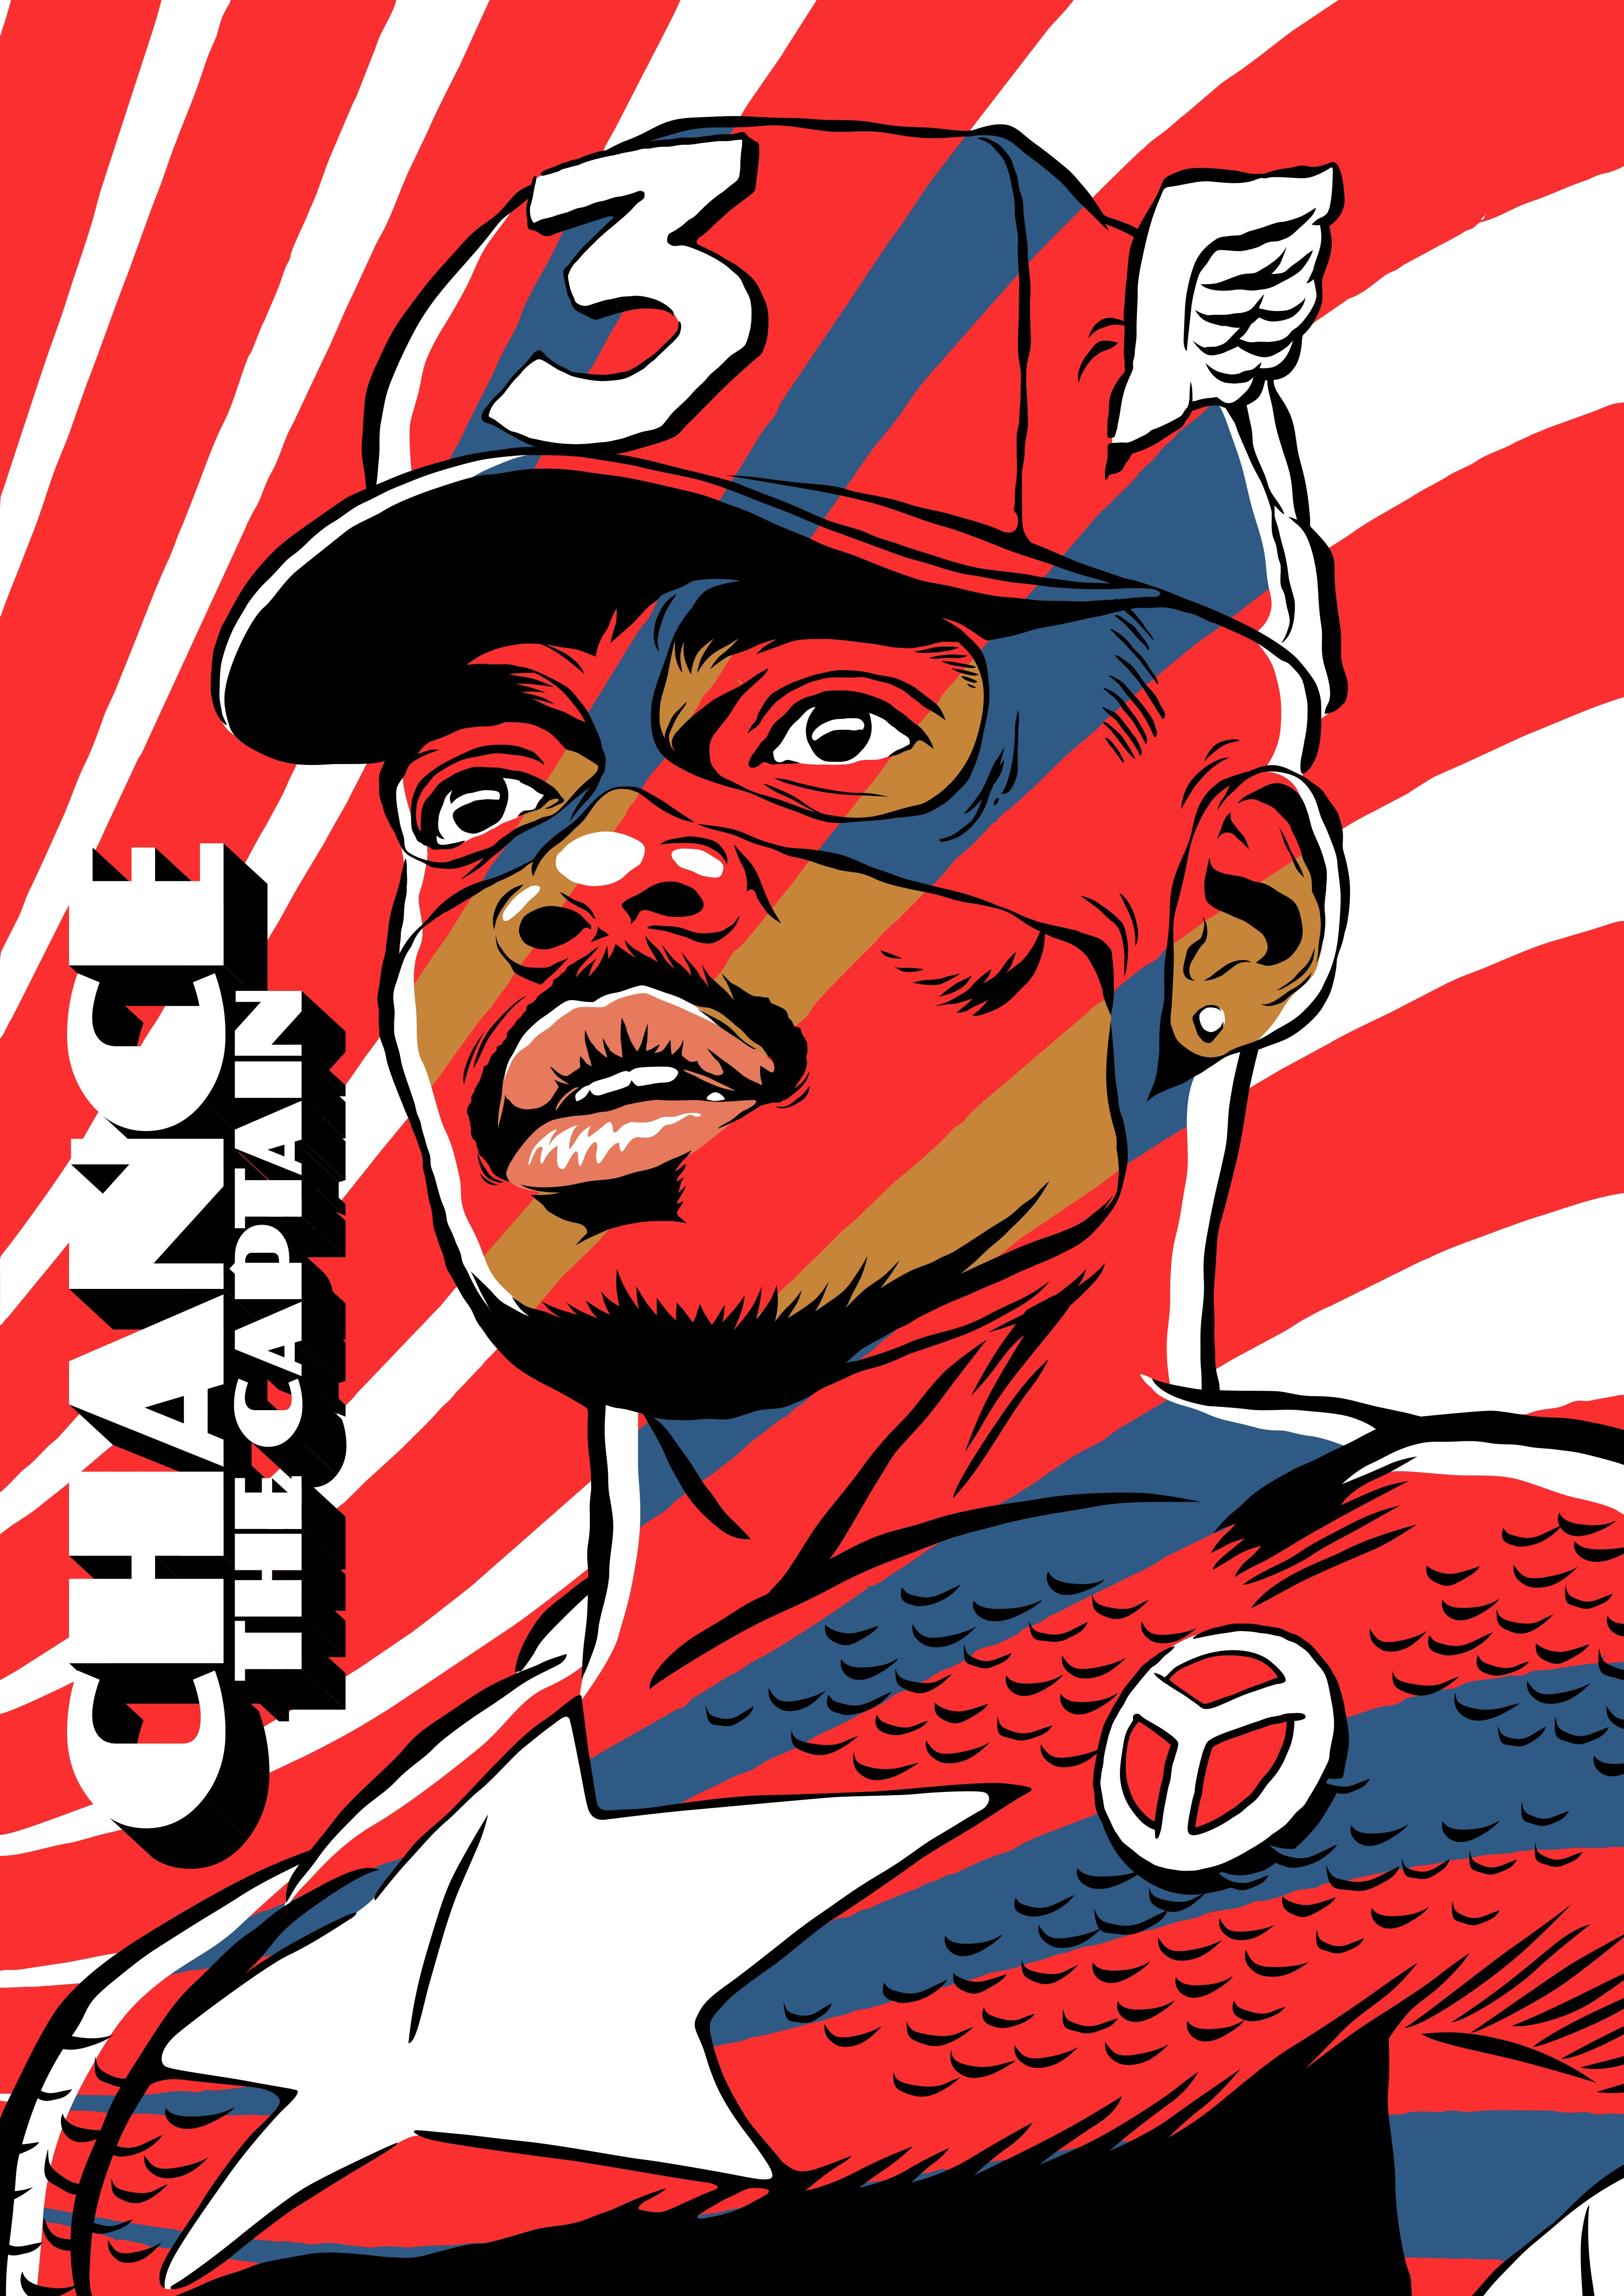 Chance the Captain by Butcher Billy